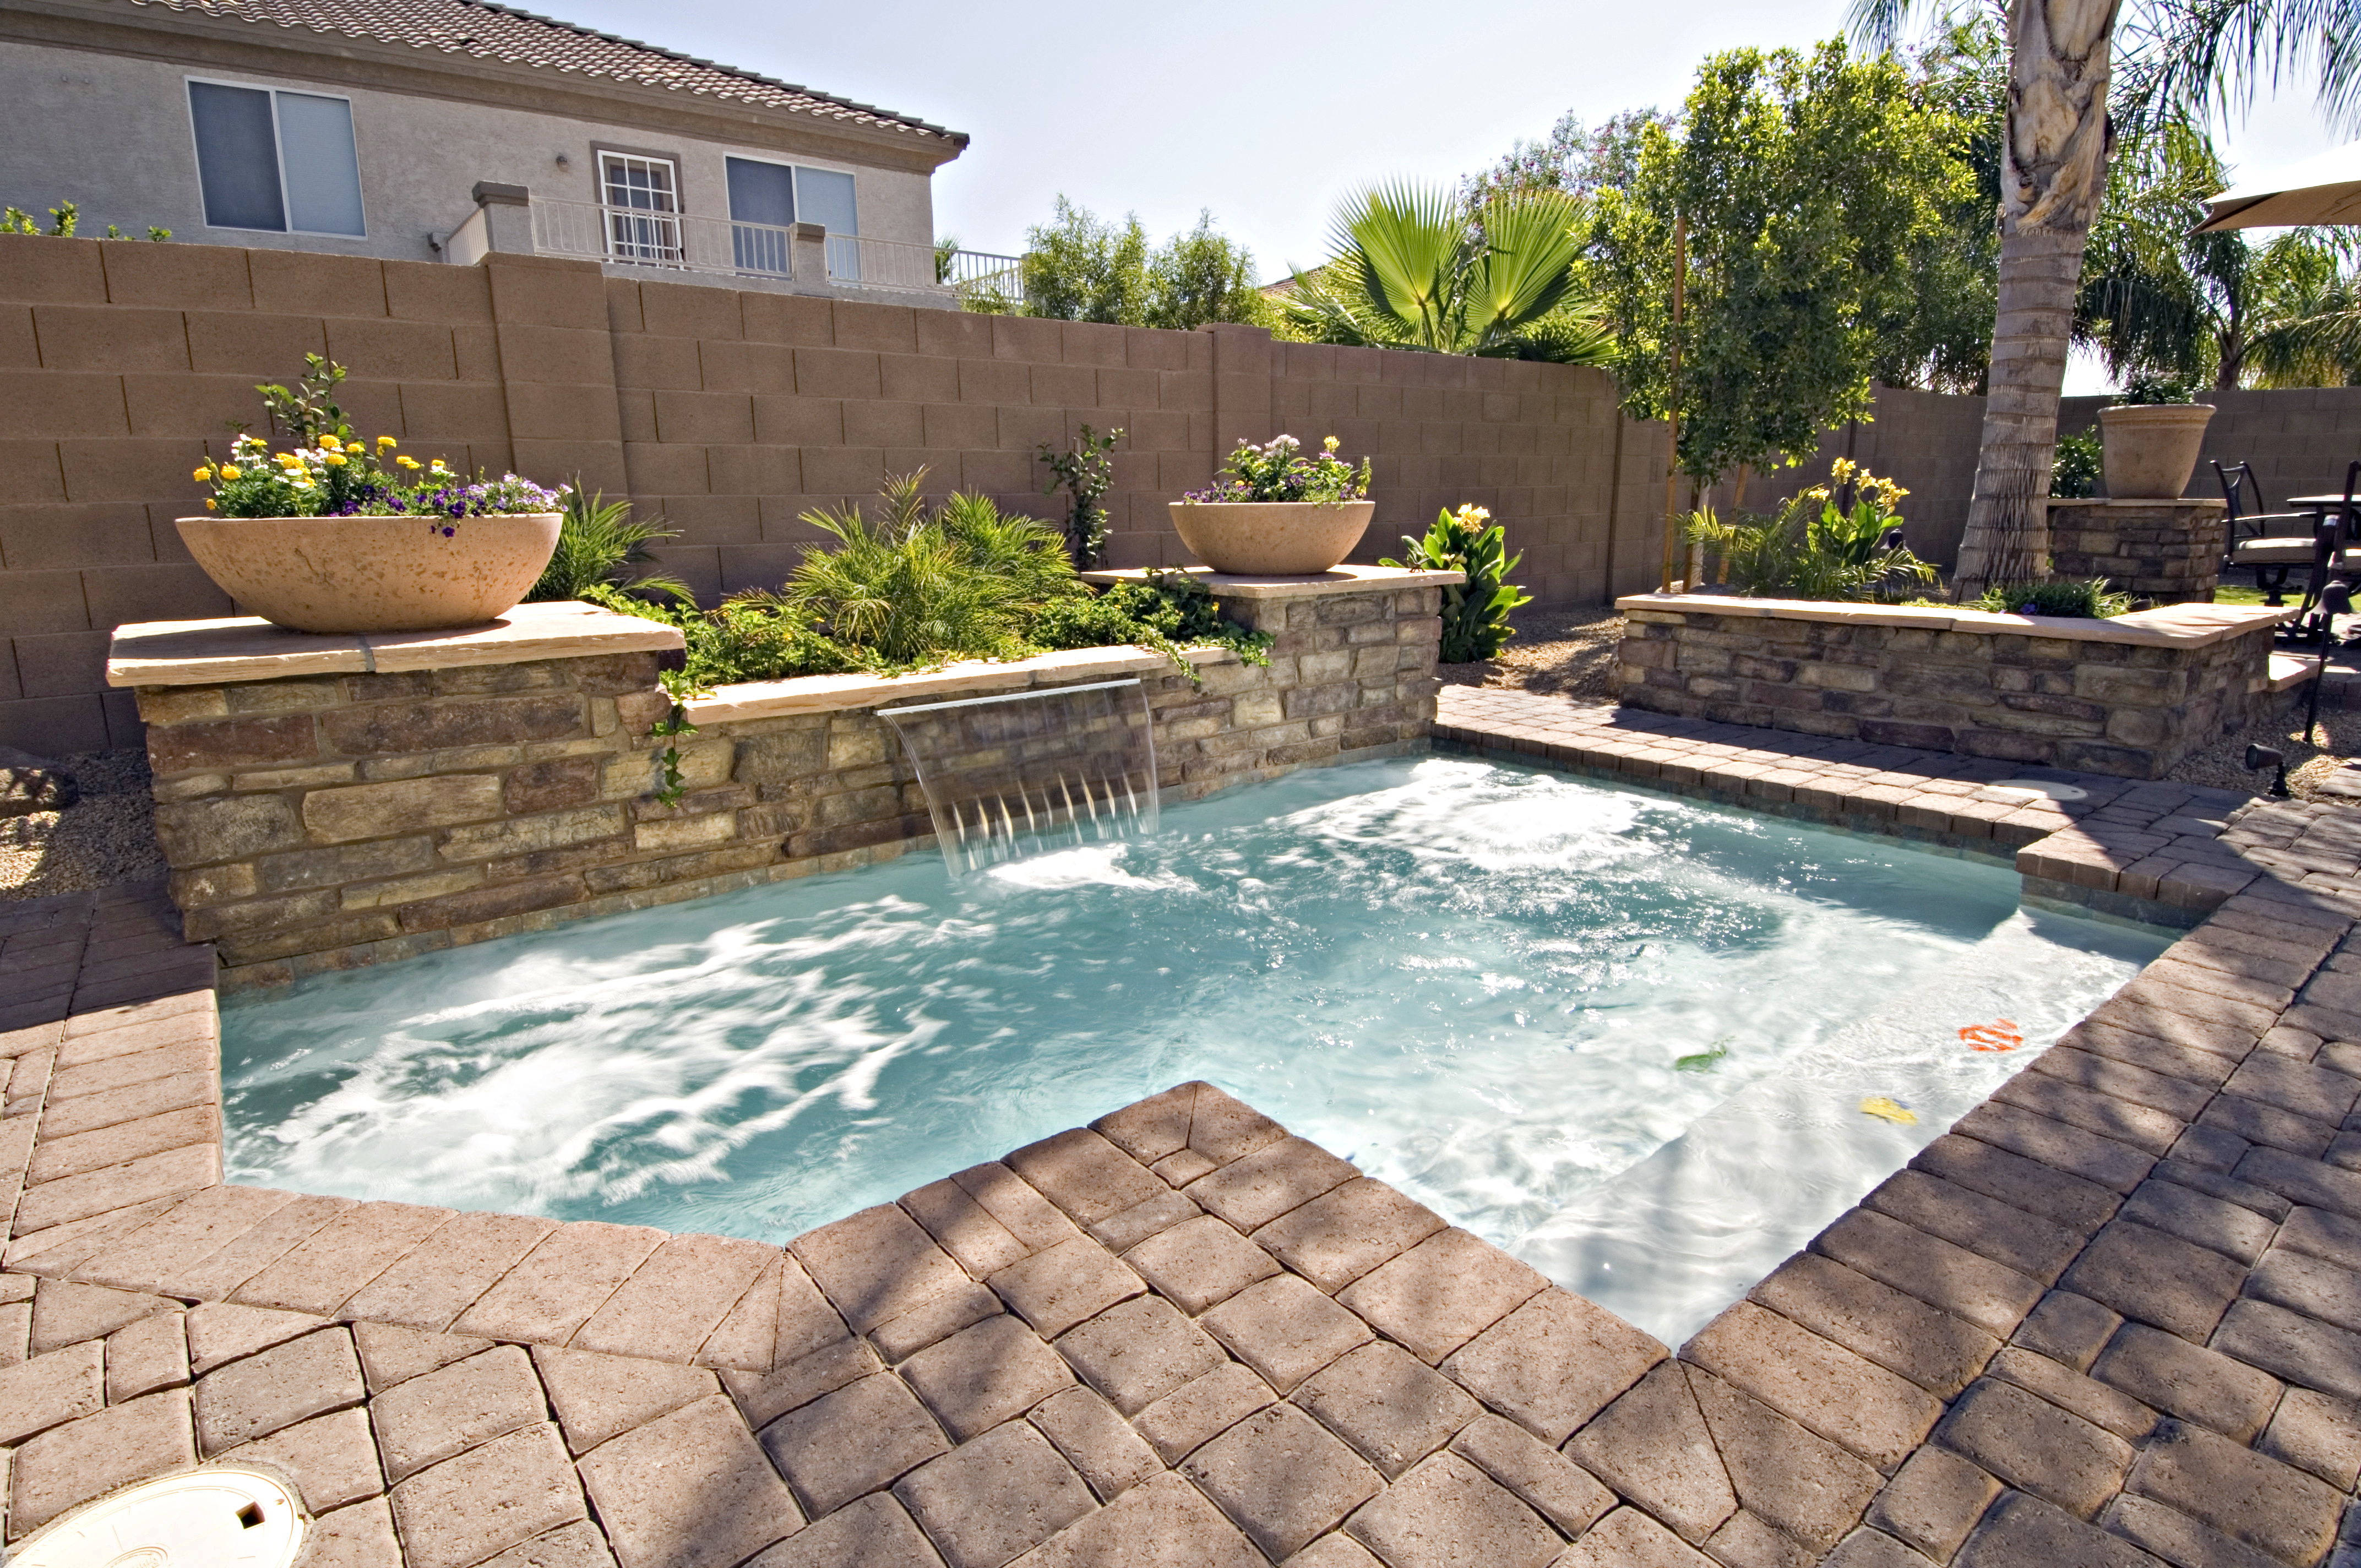 Cocktail Pool W/ Optional Raised Wall U0026 Water Feature